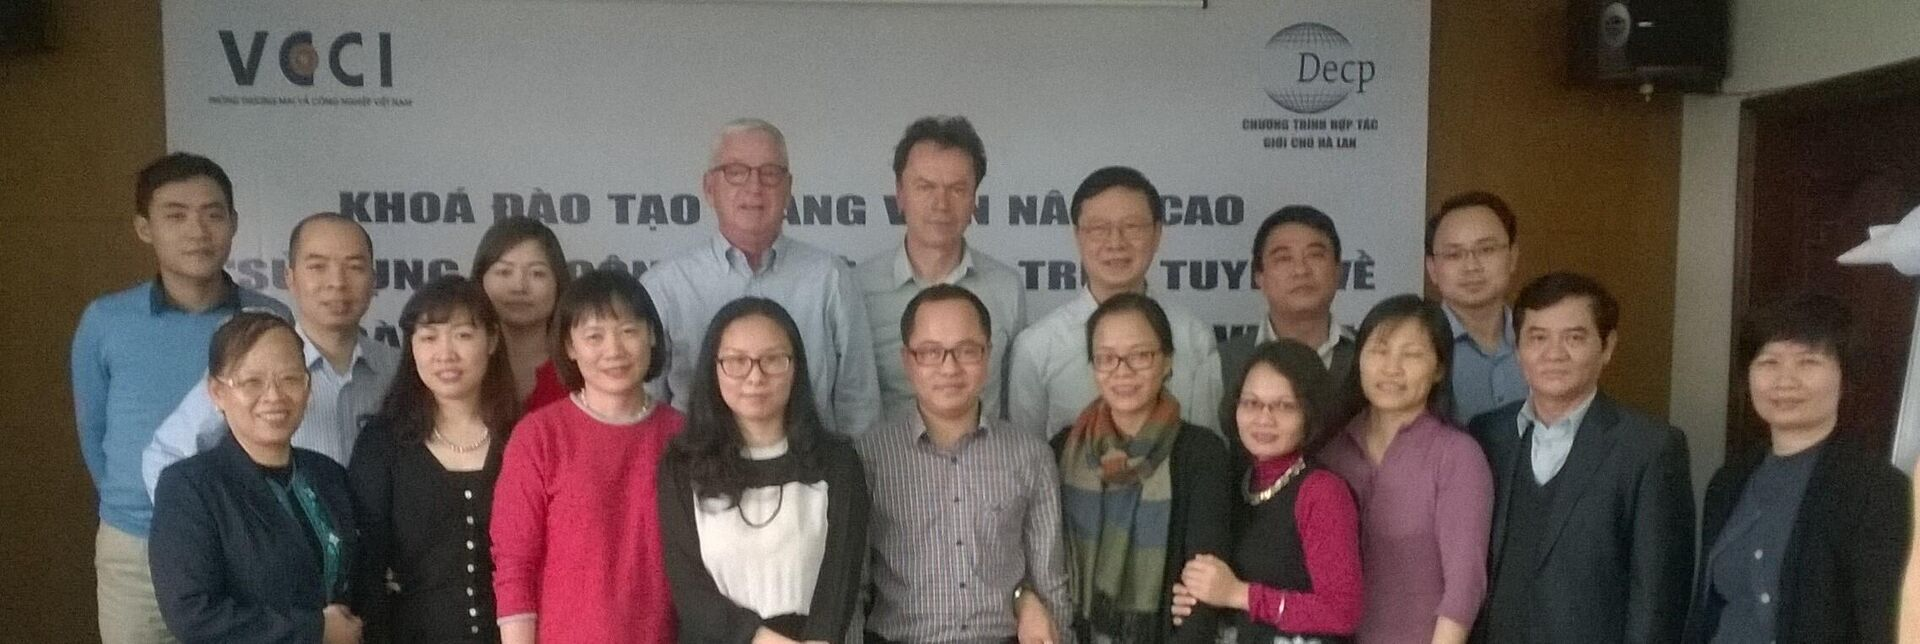 Social Dialogue training by Vietnamese trainers